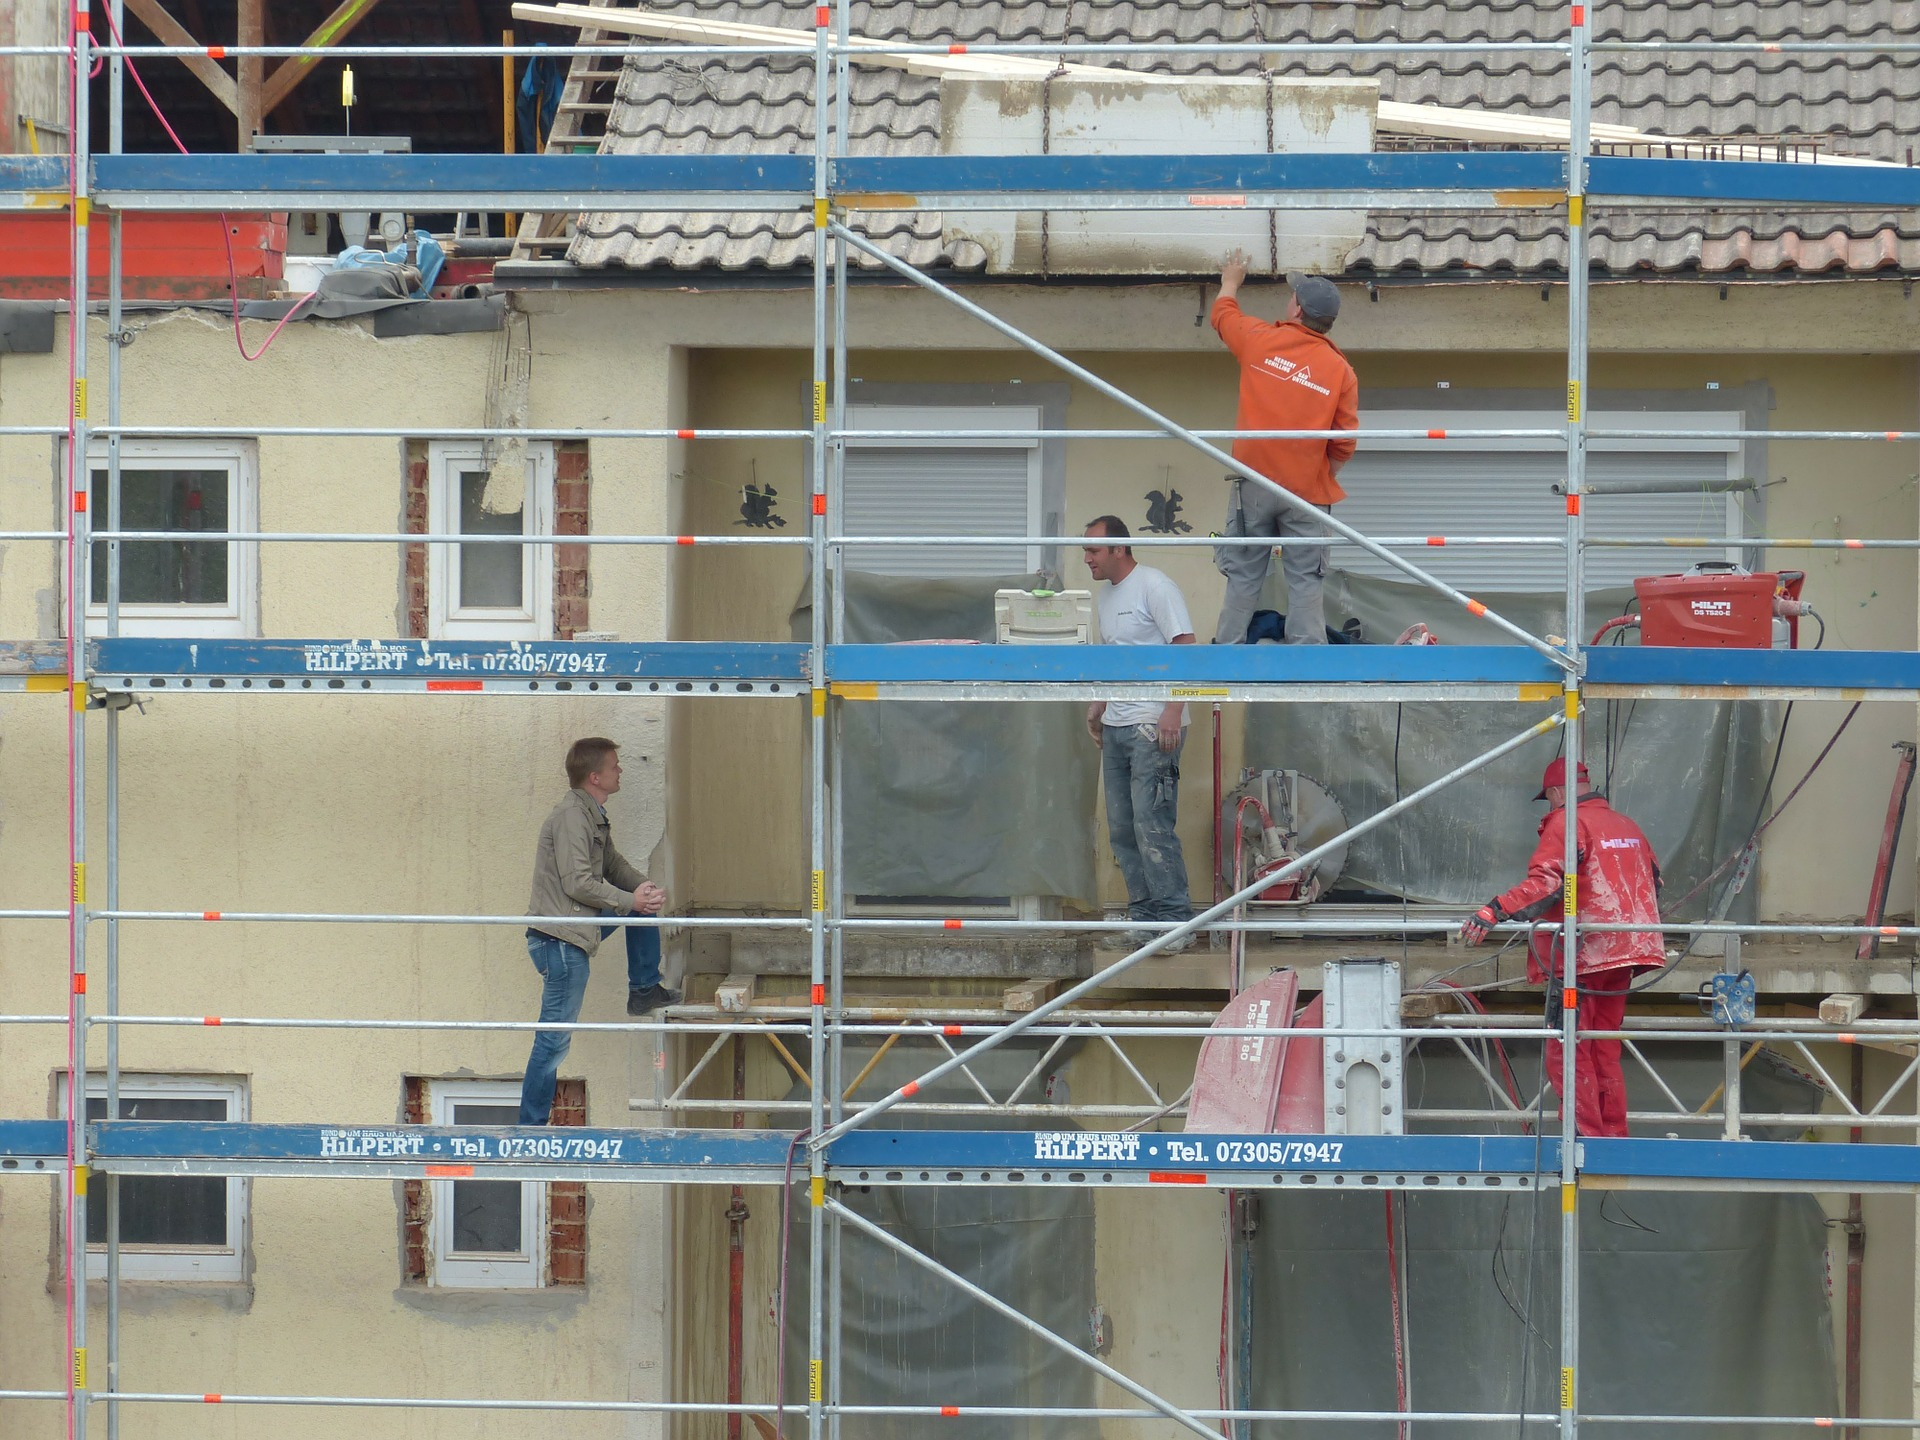 Photograph: Workings standing and climbing on scaffolding at a worksite.